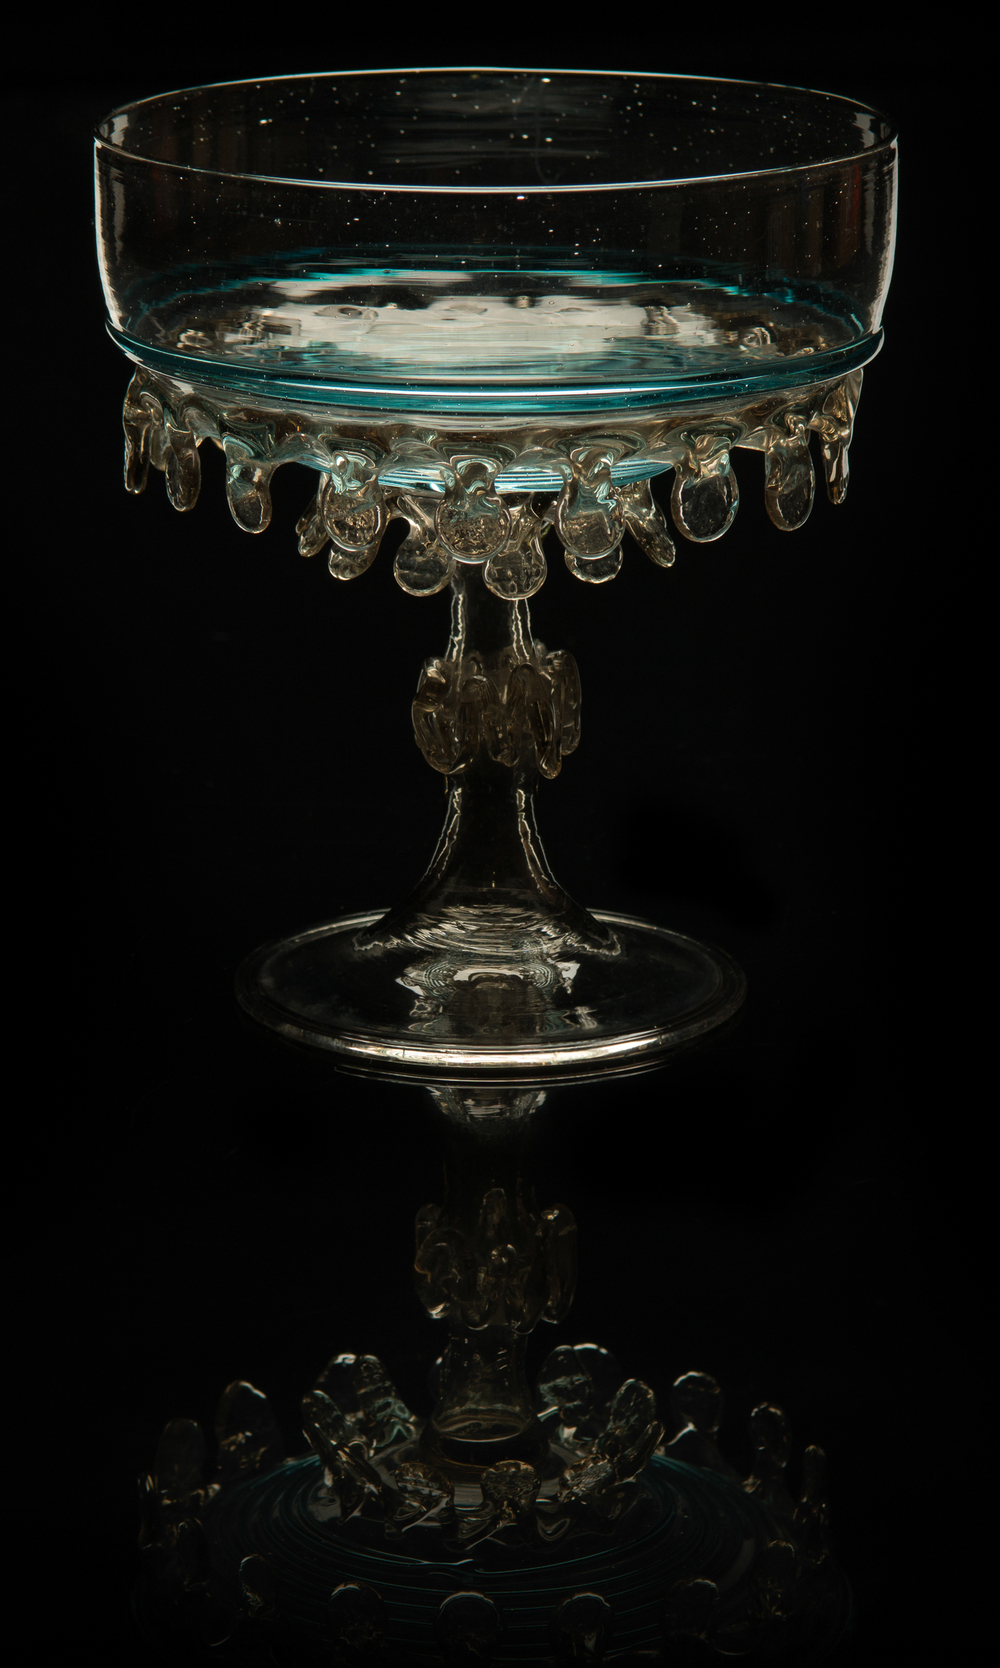 Salviati and Company,  Teardrop Compote  (circa 1885, glass, 5 1/2 x 5 x 5 inches), VV.578